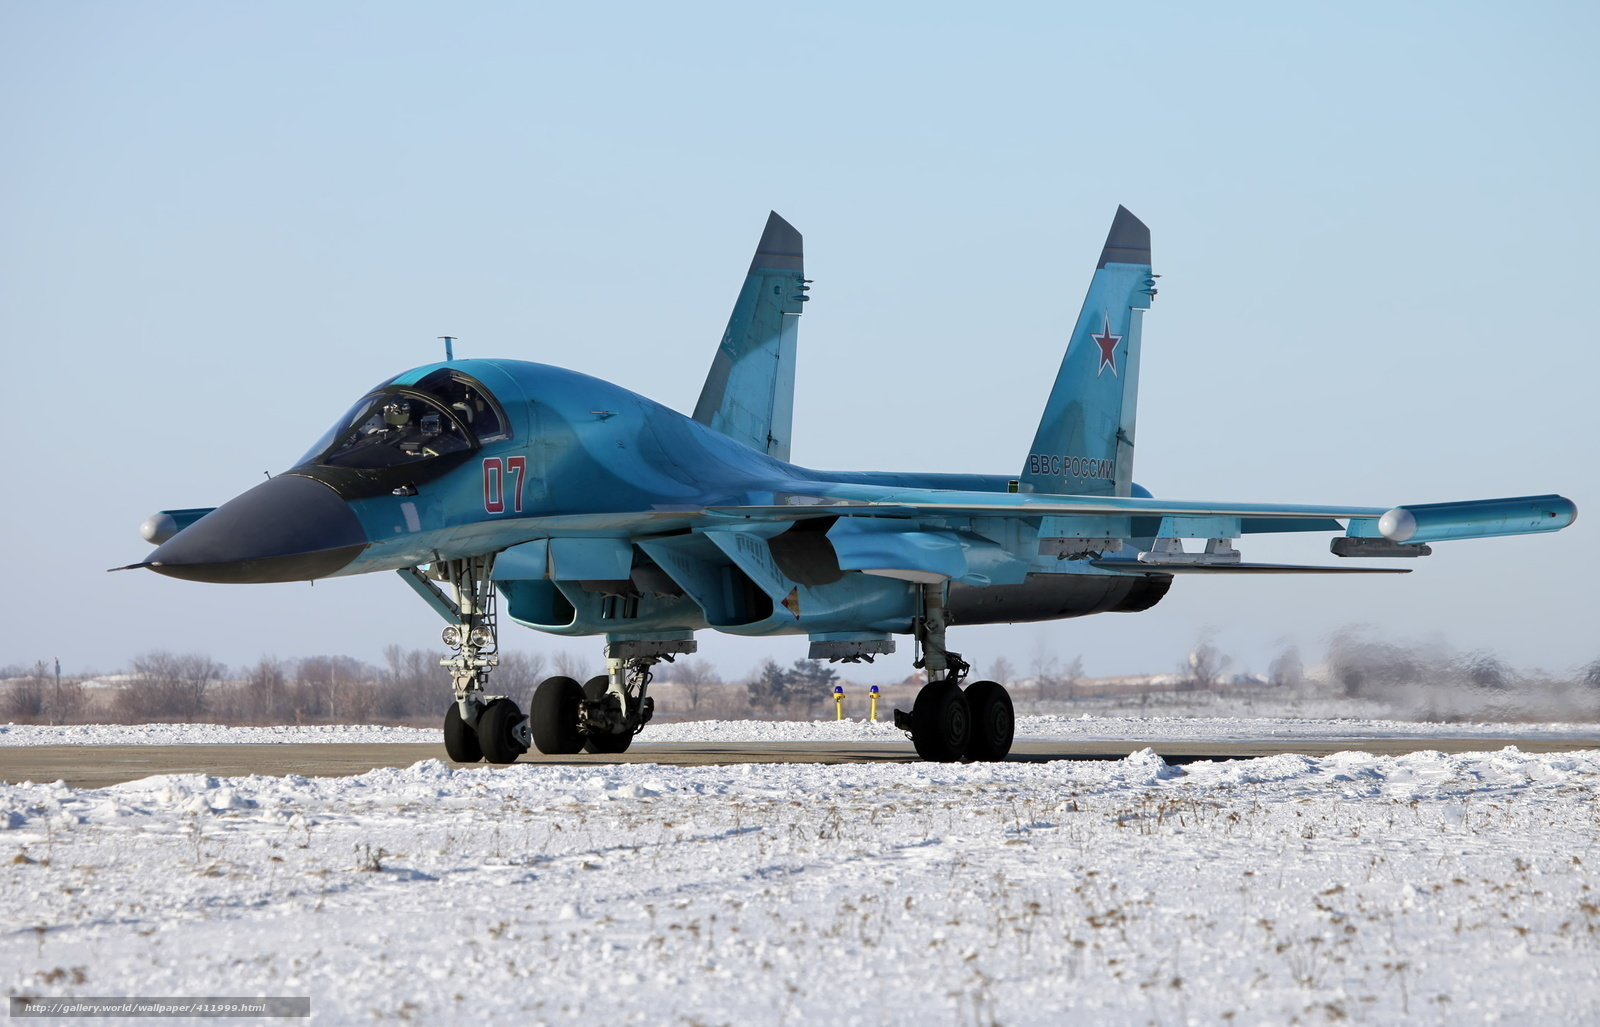 Download wallpaper Su-34, Sukhoi, The Su-34, dry free desktop